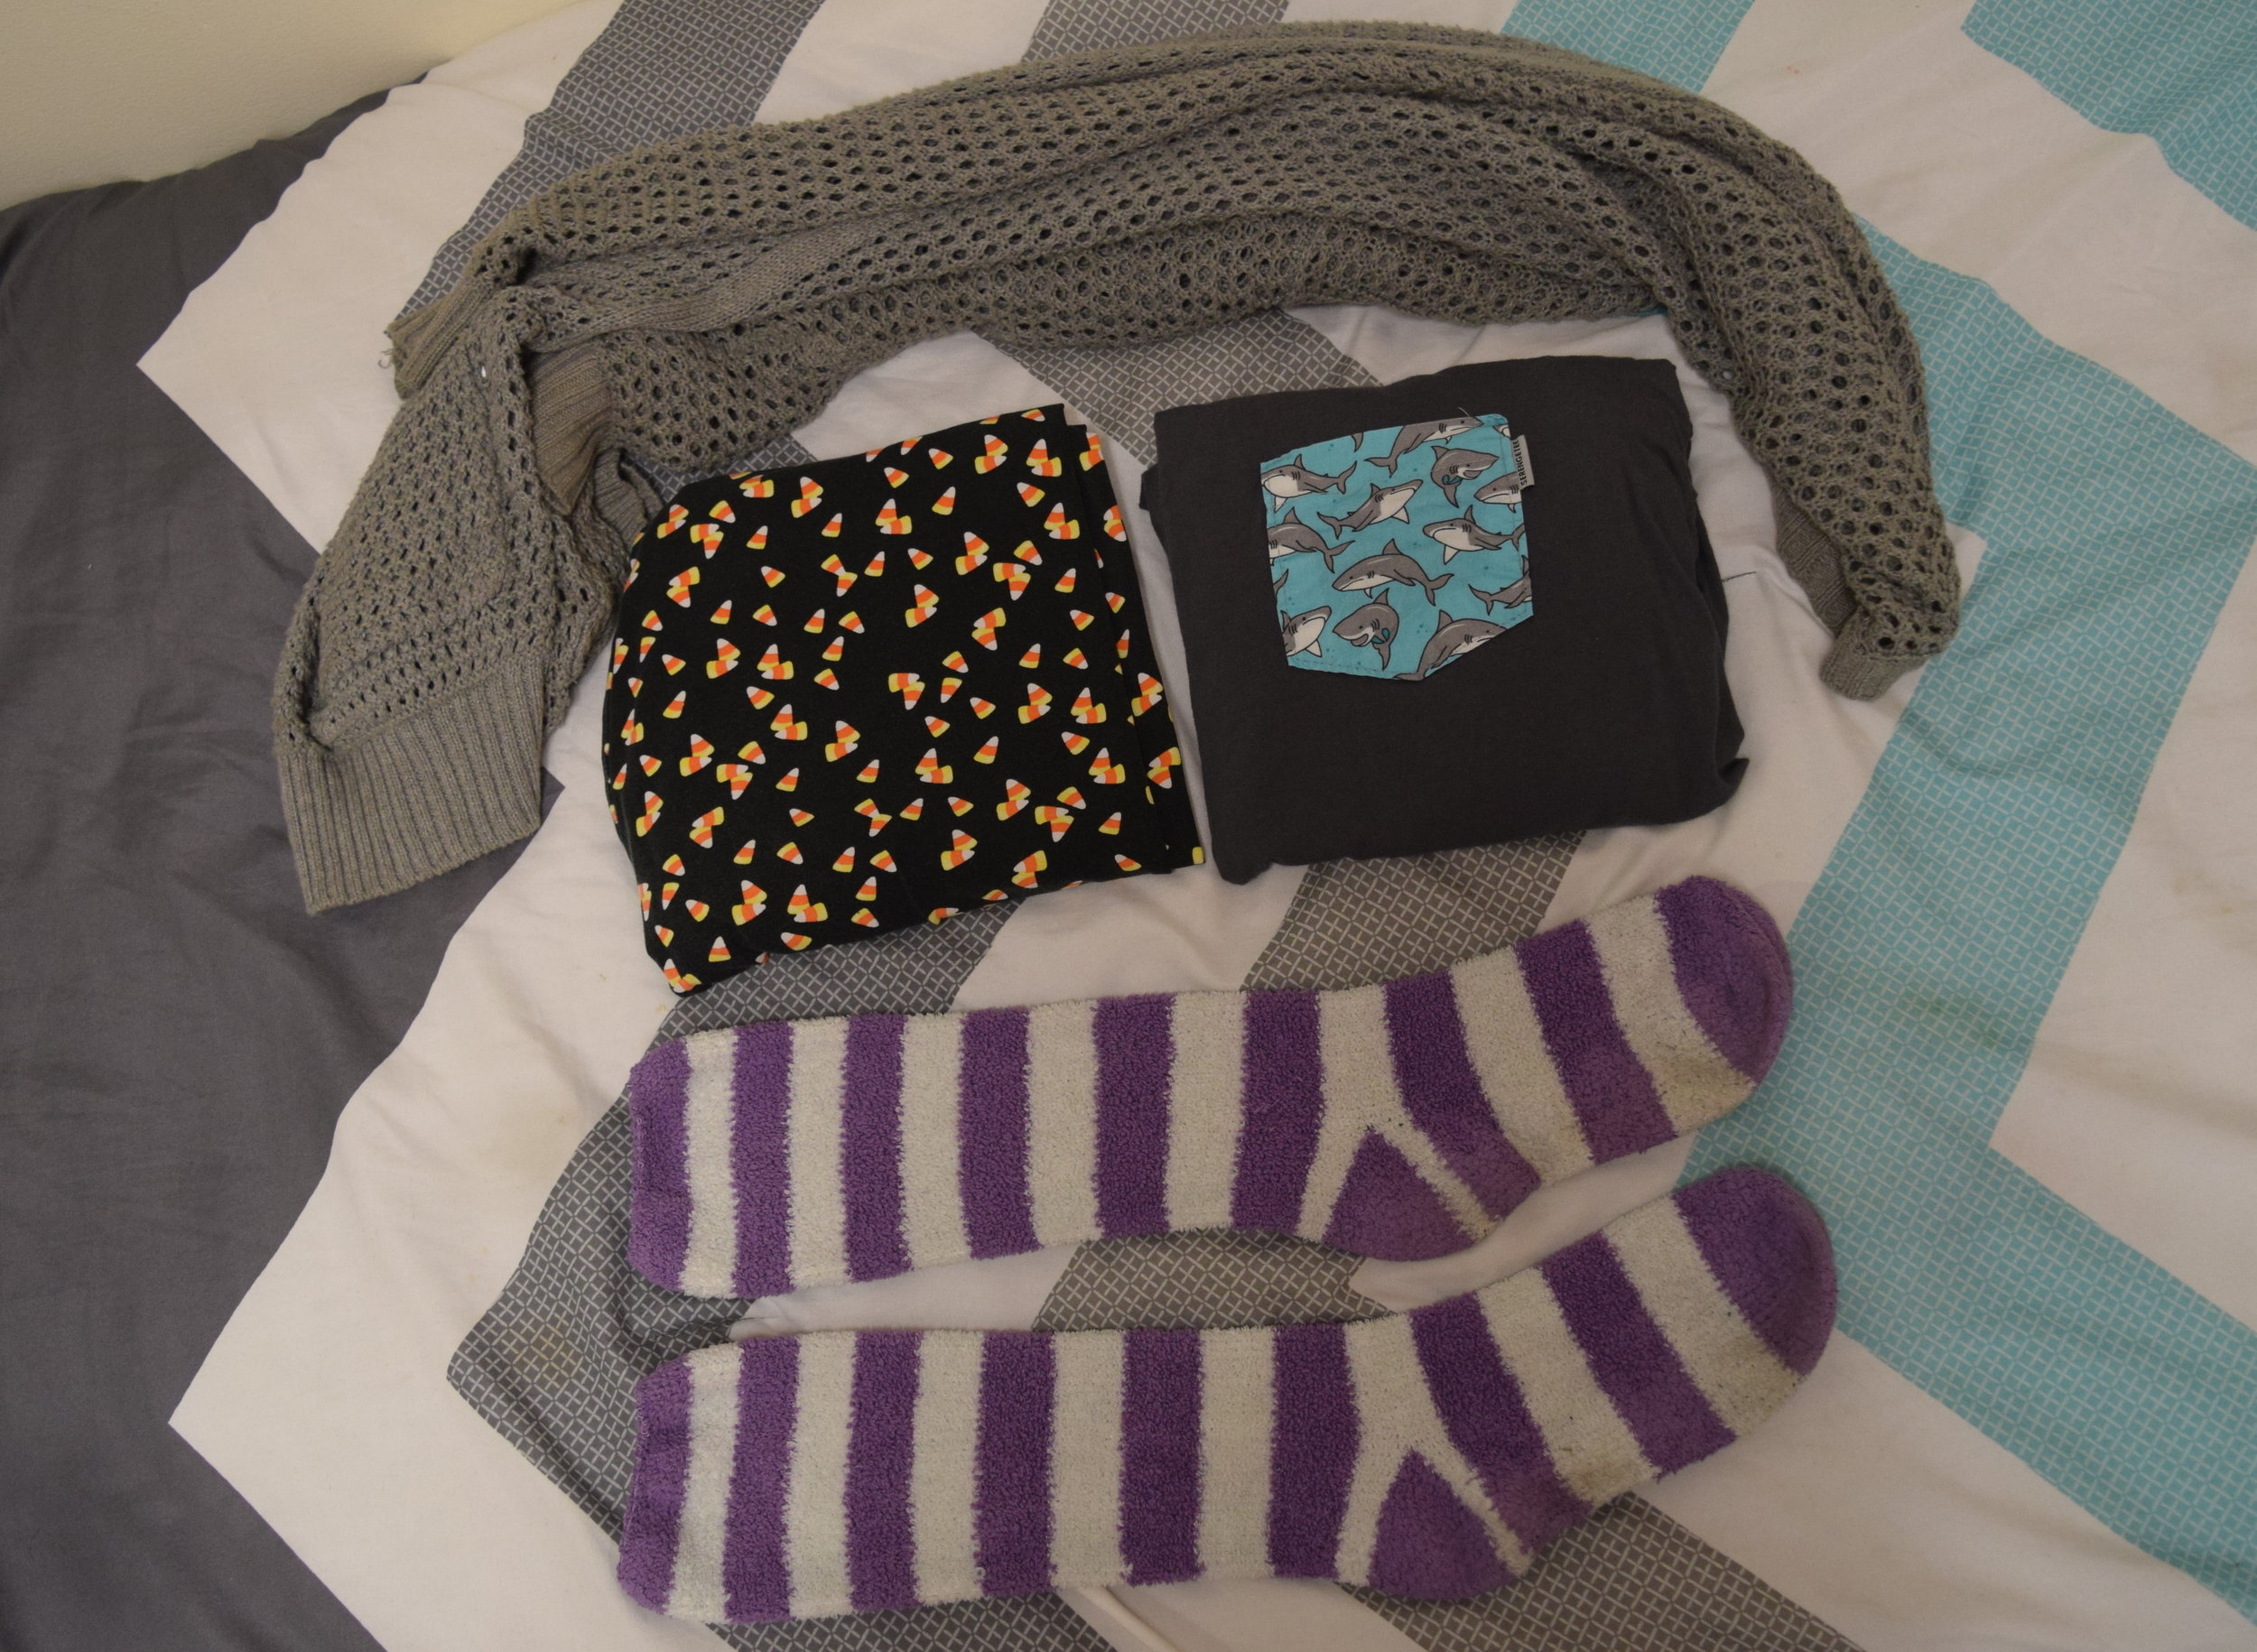 Shirt . Leggings (no clue). Sweater (no longer being sold at  The Gap ). Socks (no clue omg I'm sorry).